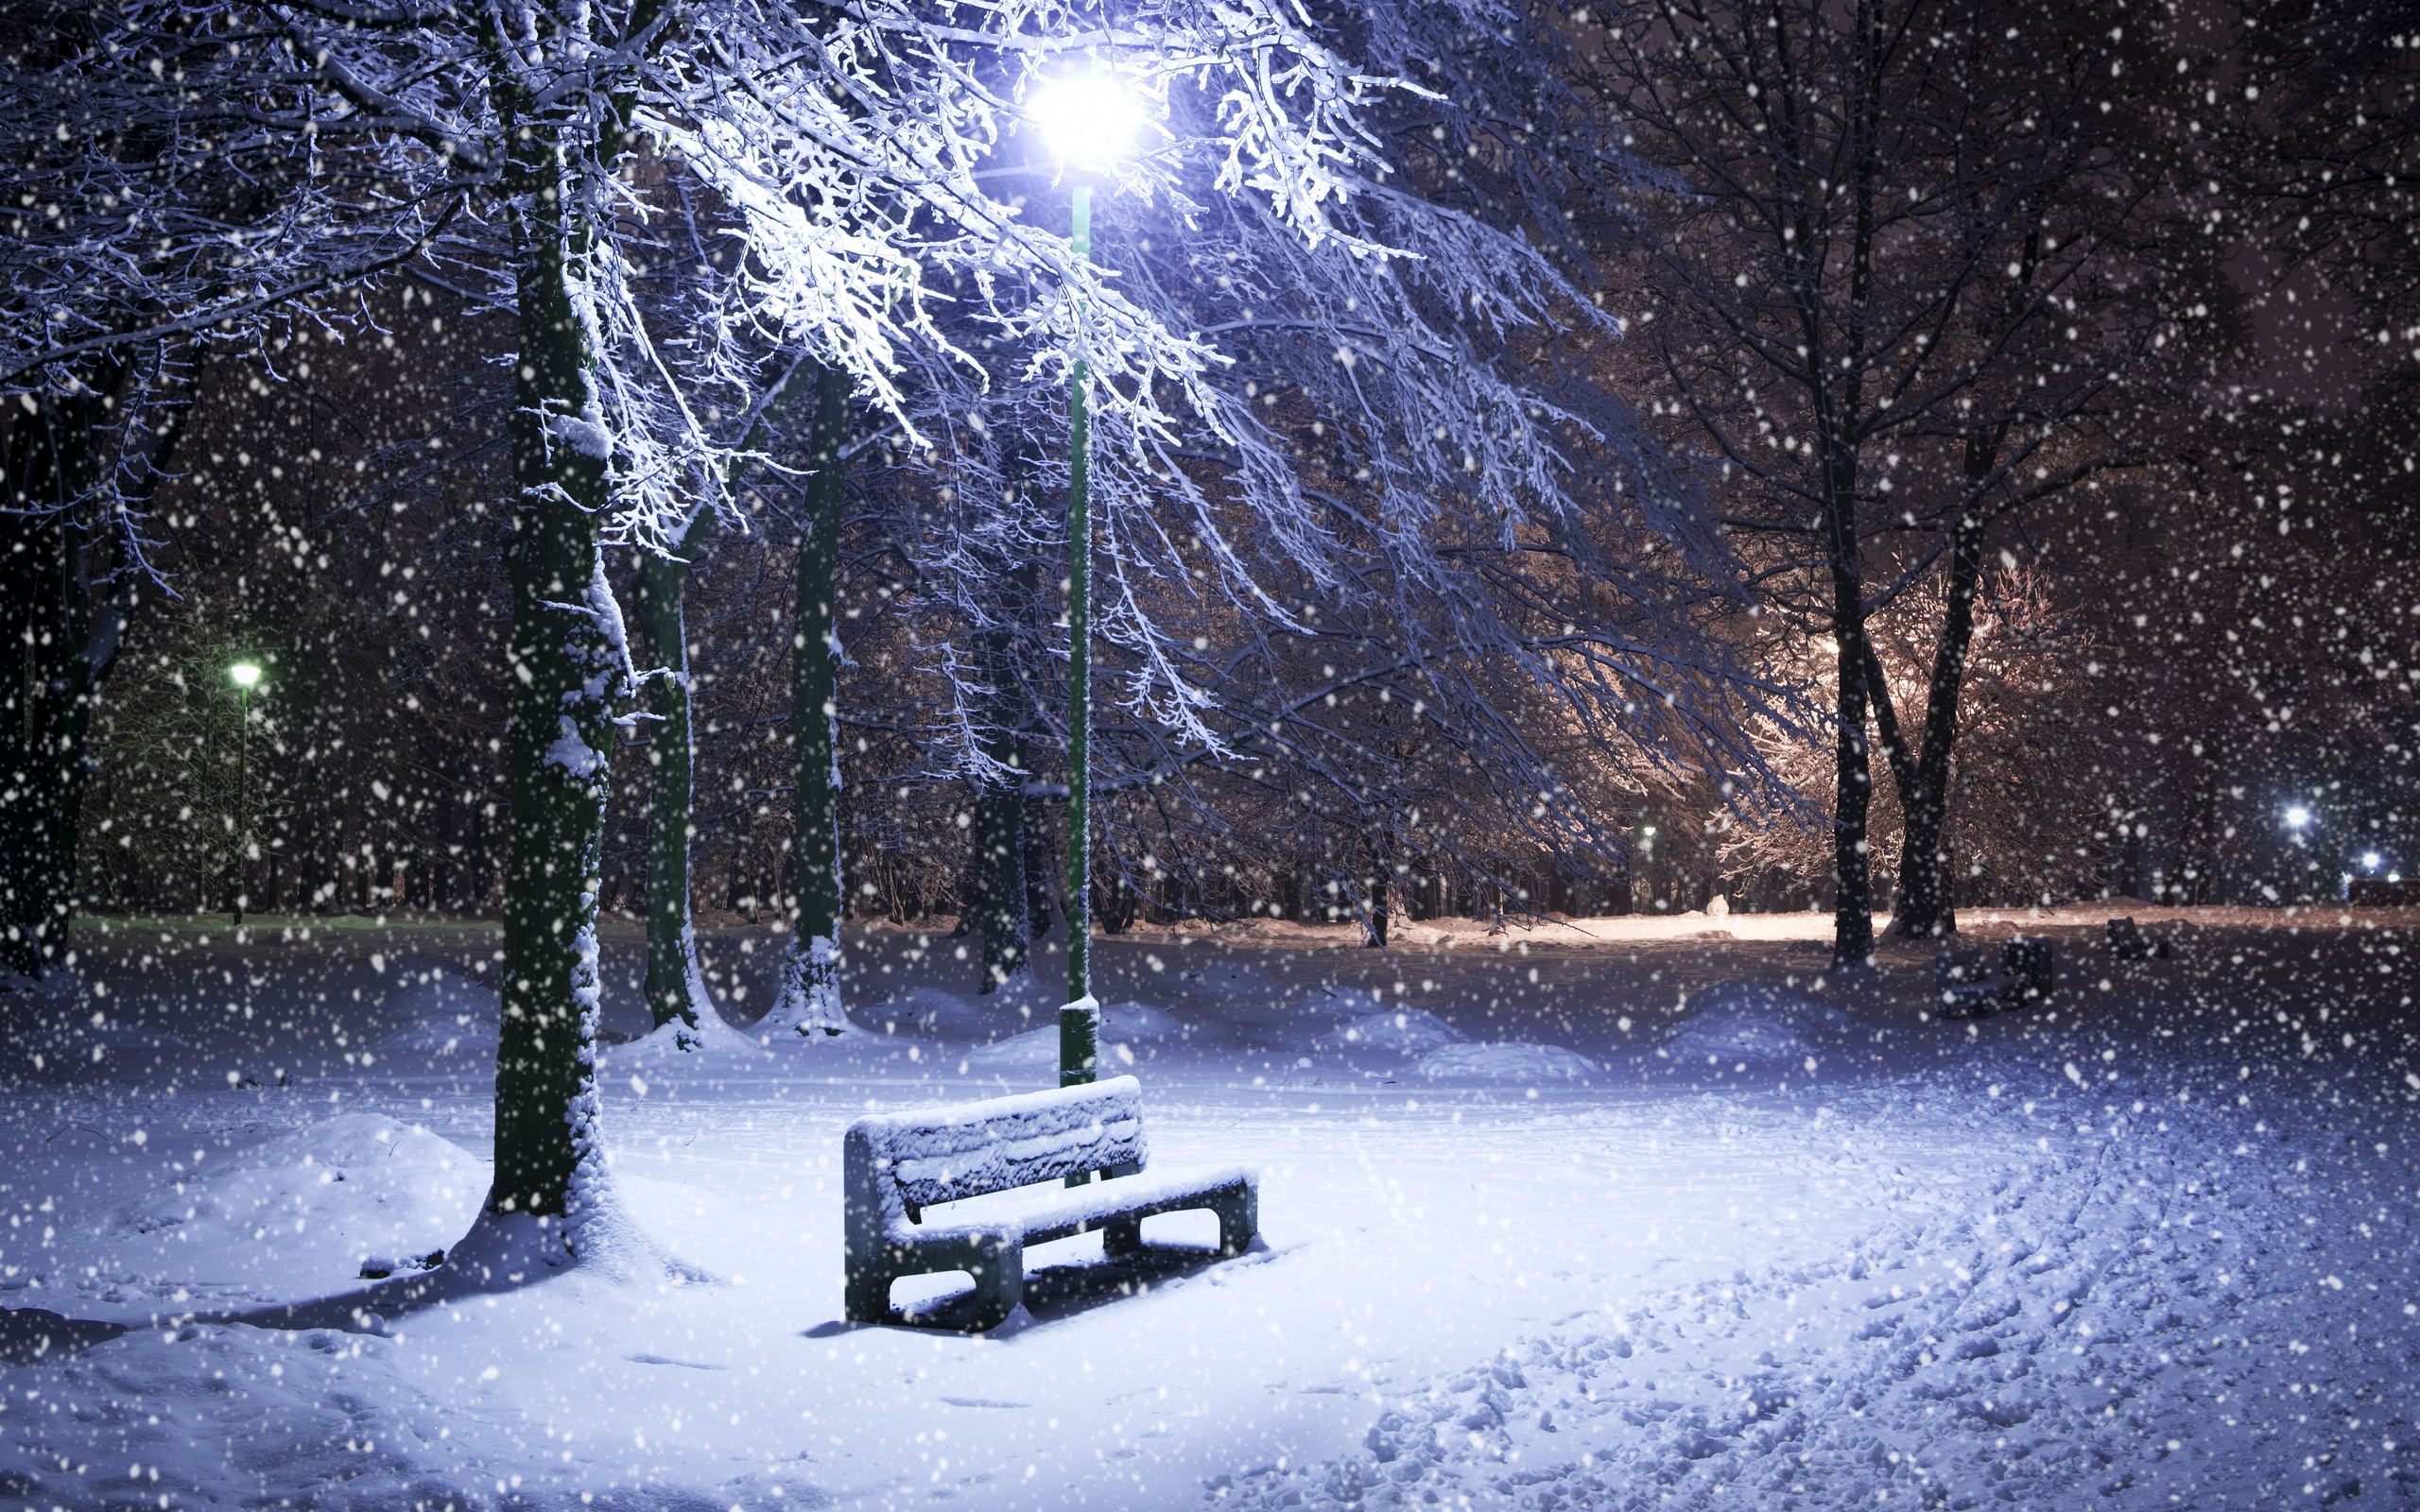 Cool Winter At Nights Wallpaper Beautiful Wallpaper with 2560x1600 2560x1600